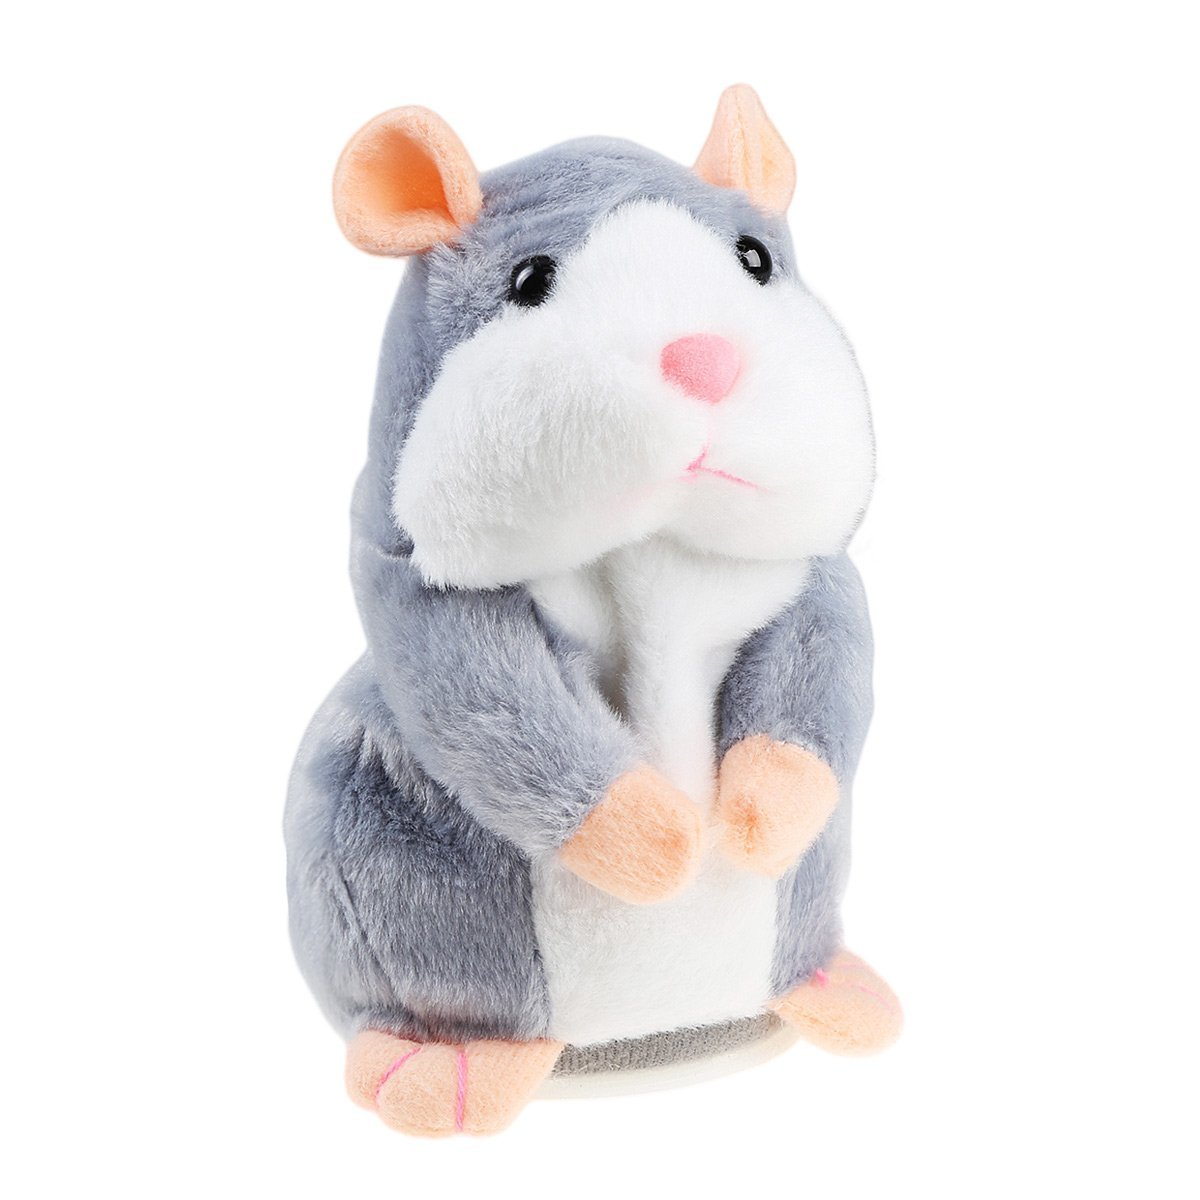 Interactive Talking Hamster Plush Toy, Repeat What You Say Funny Kids Stuffed Toys, Electronic Pet Talking Buddy Mouse for Valentine's Day, Birthday Gift Kids Early Learning zhao&ans